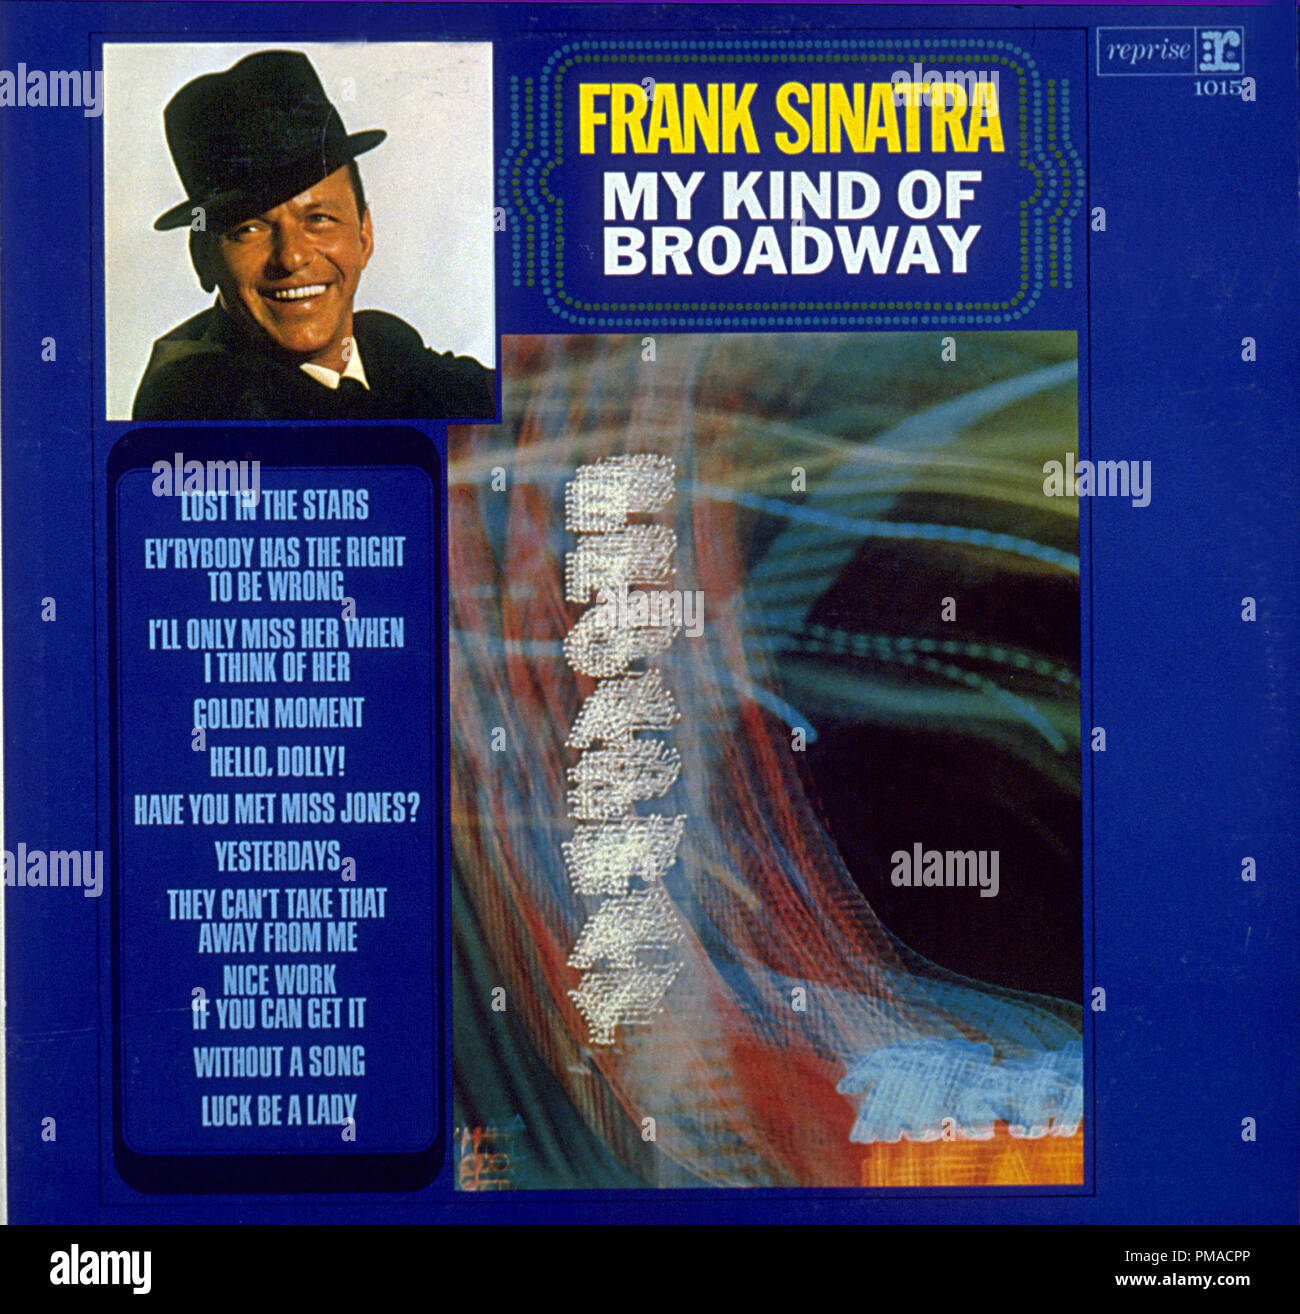 frank sinatra songs free mp3 download